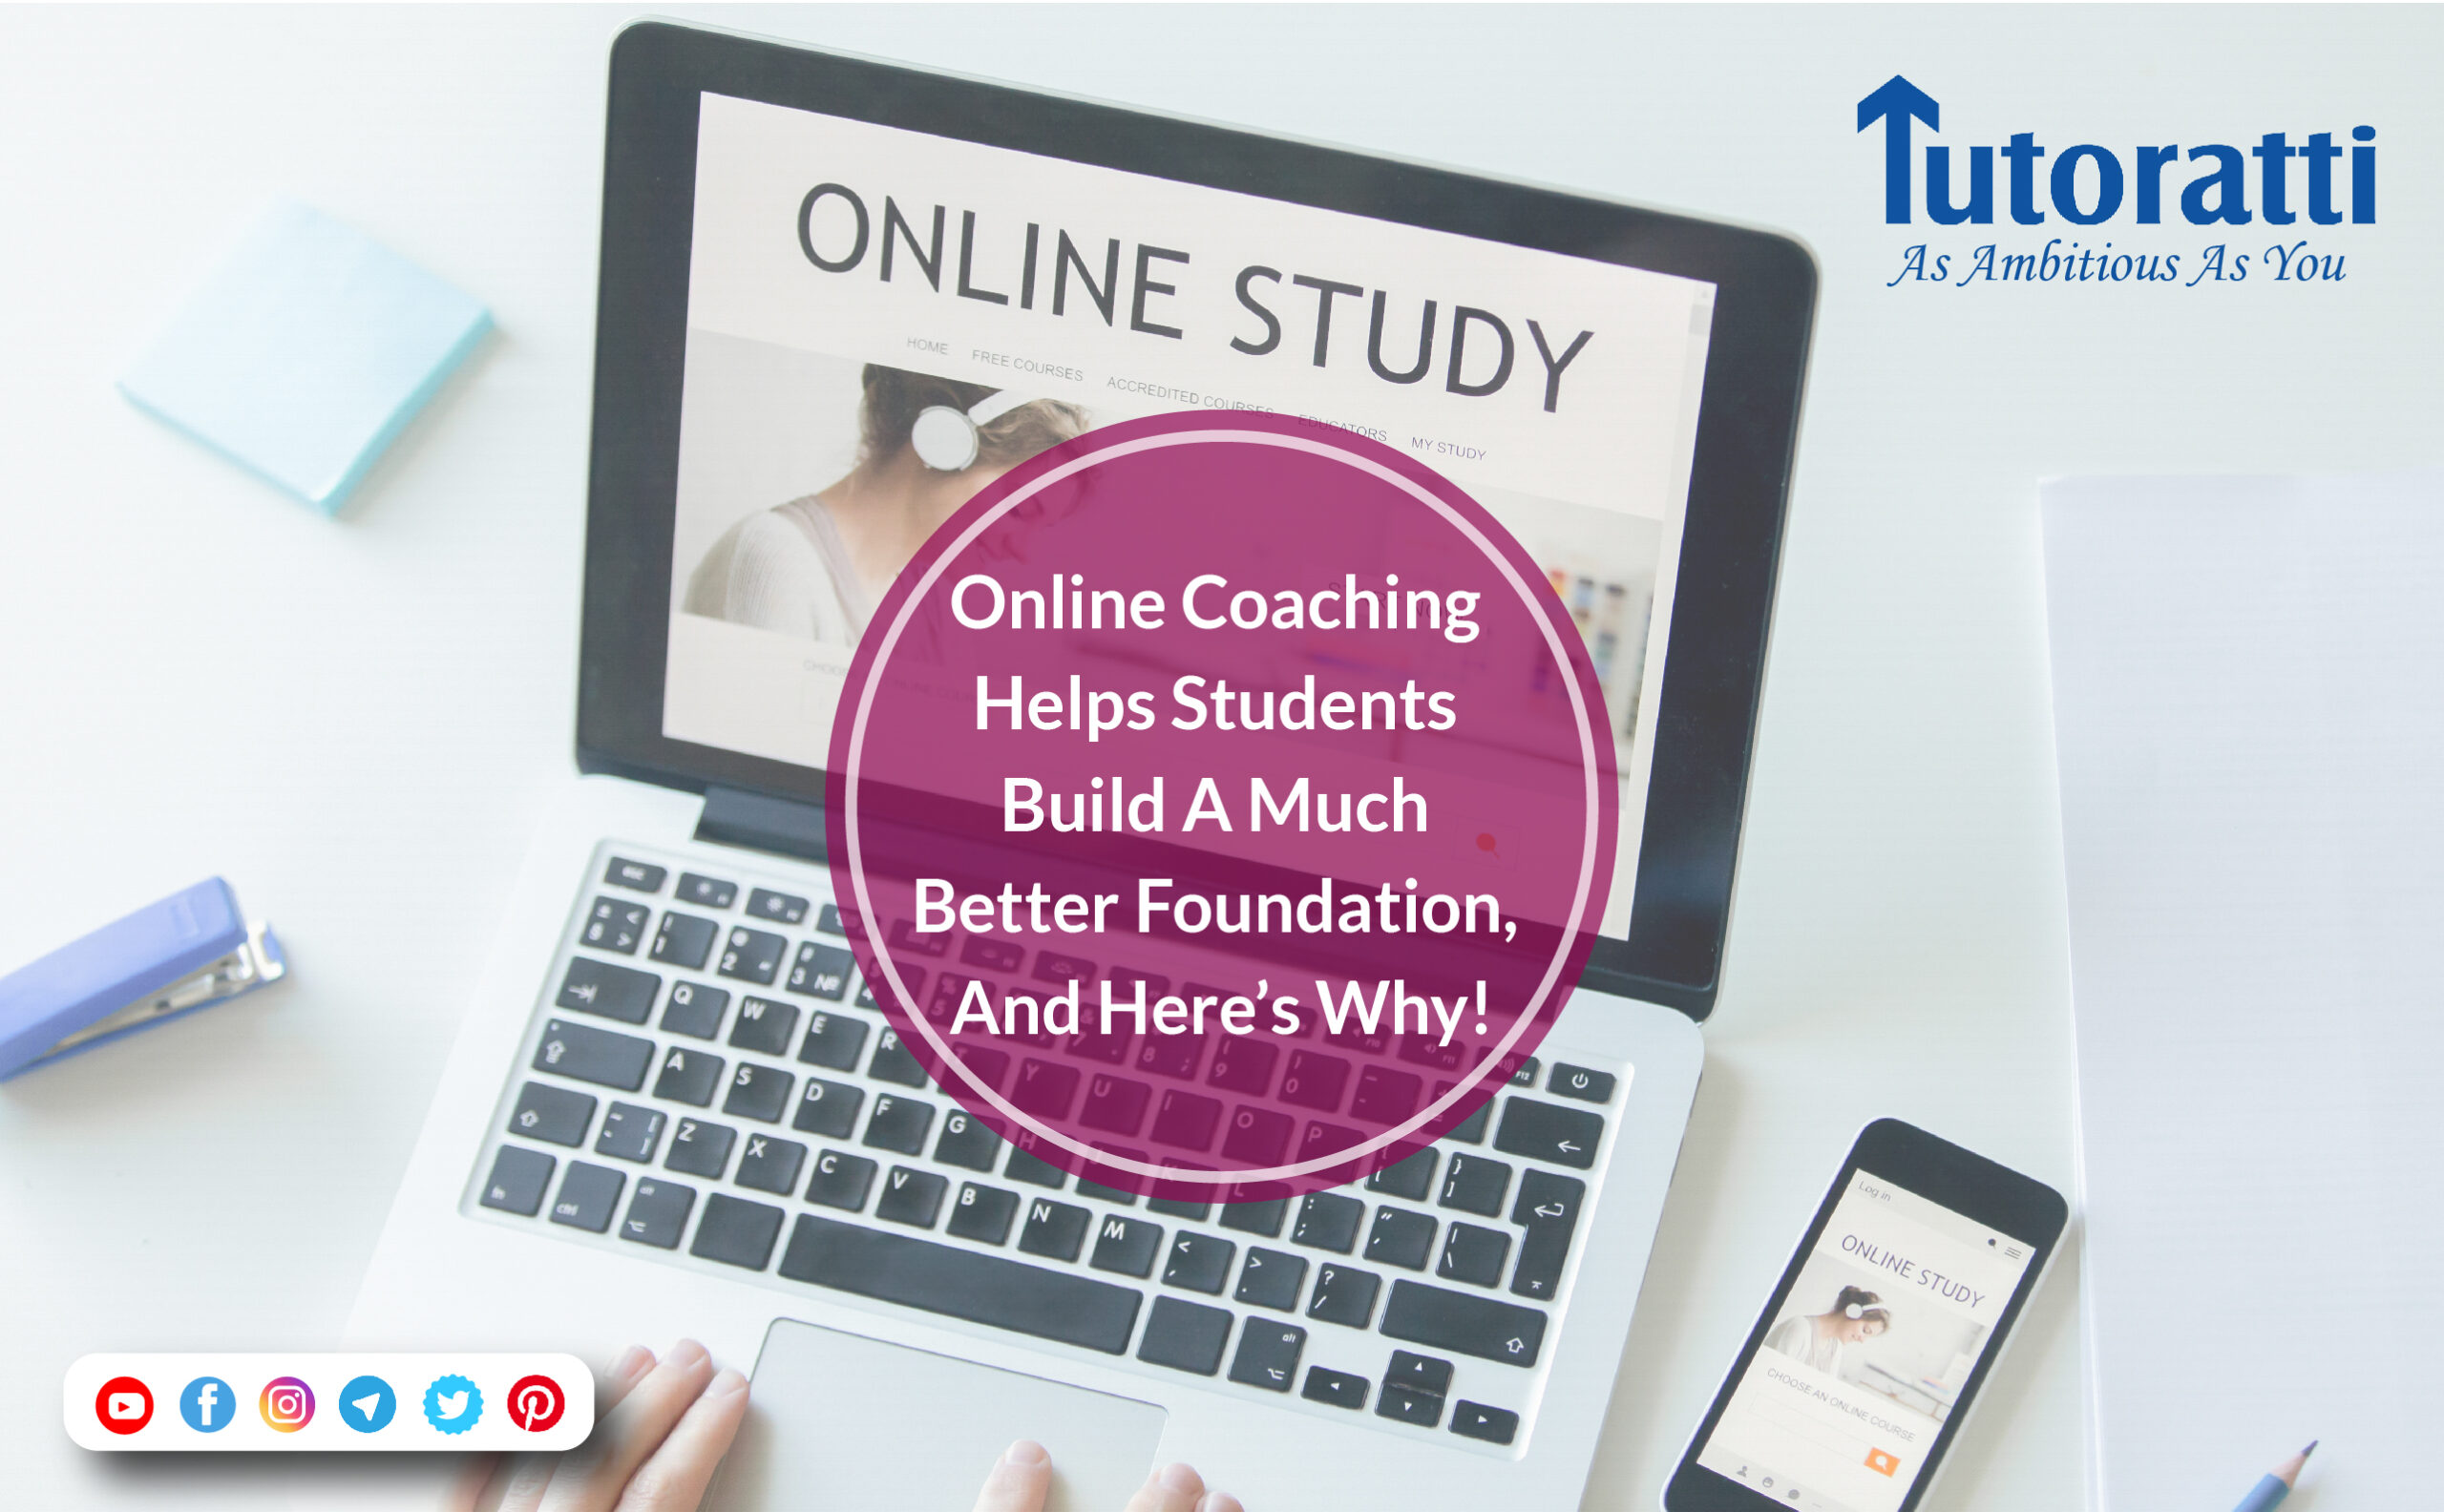 Online Coaching Helps Students Build A Much Better Foundation, And Here's Why!